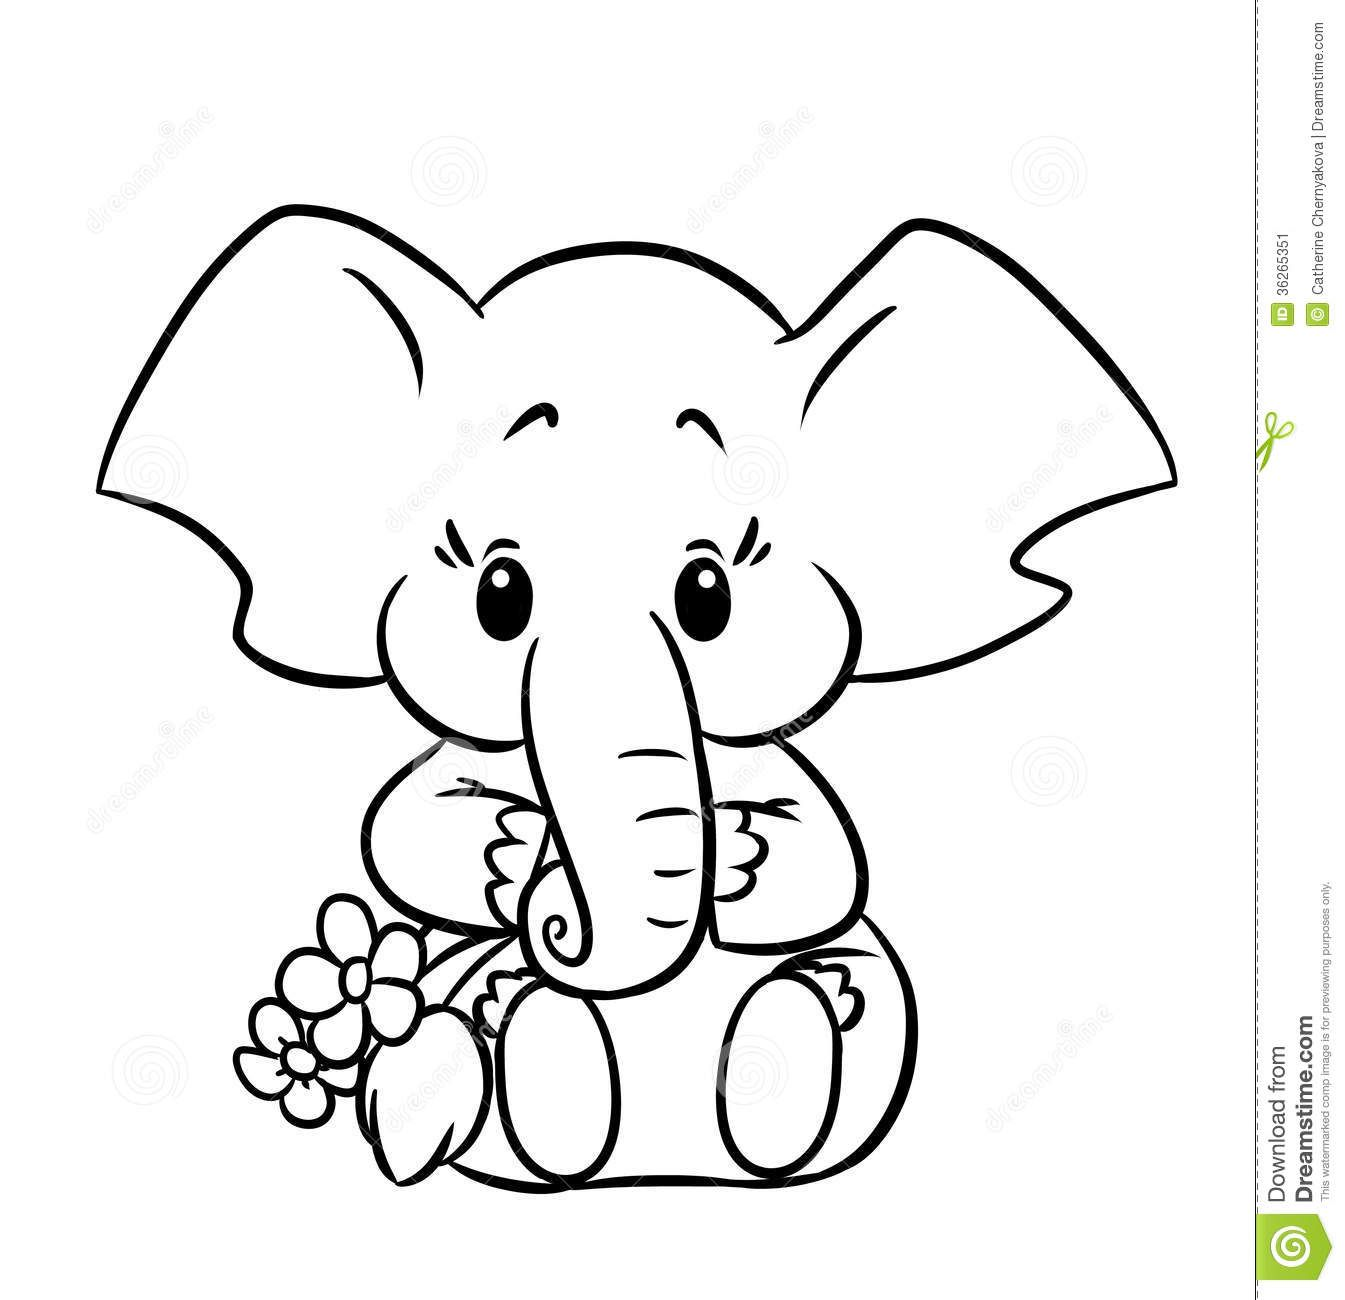 Pin By Ana On Baby Quilts Elephant Coloring Page Baby Elephant Drawing Elephant Drawing